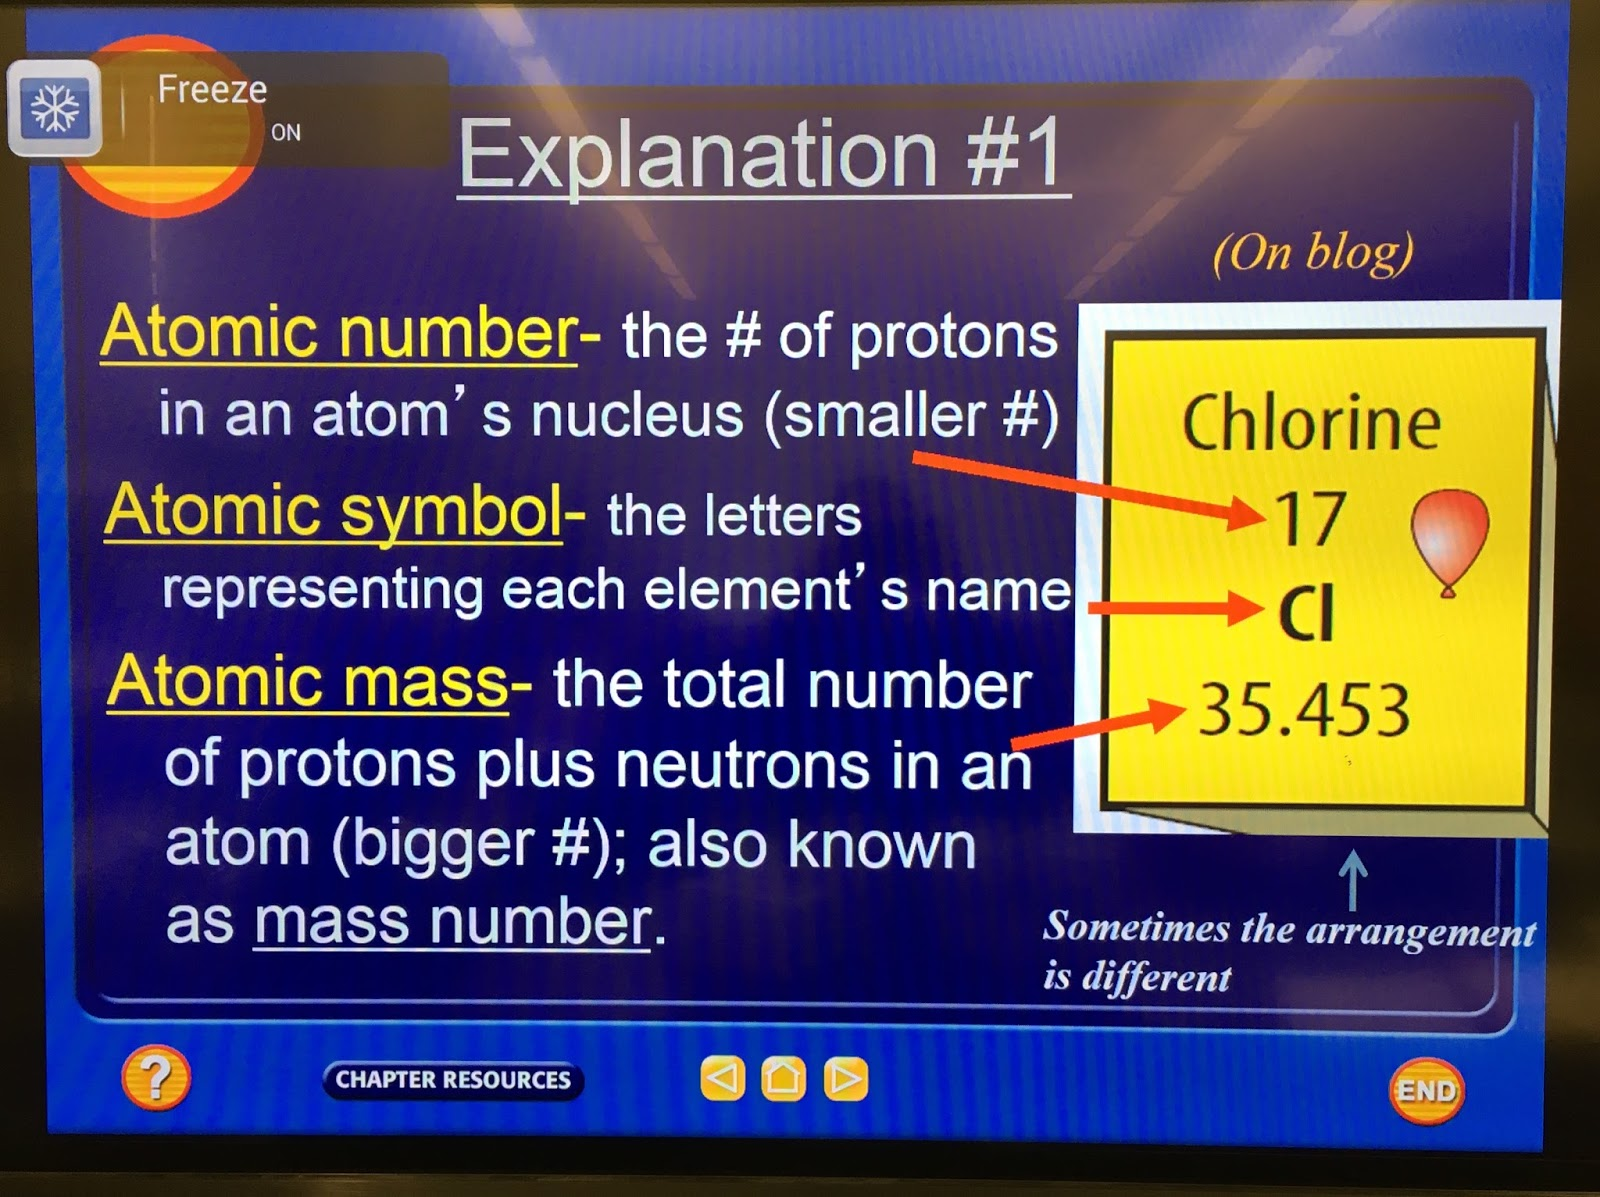 Mr villas 7th gd science class periodic table analyzing an element these pictures shown in class indicate what the numbers and symbols mean for each element found on the periodic table study this you will be tested on it urtaz